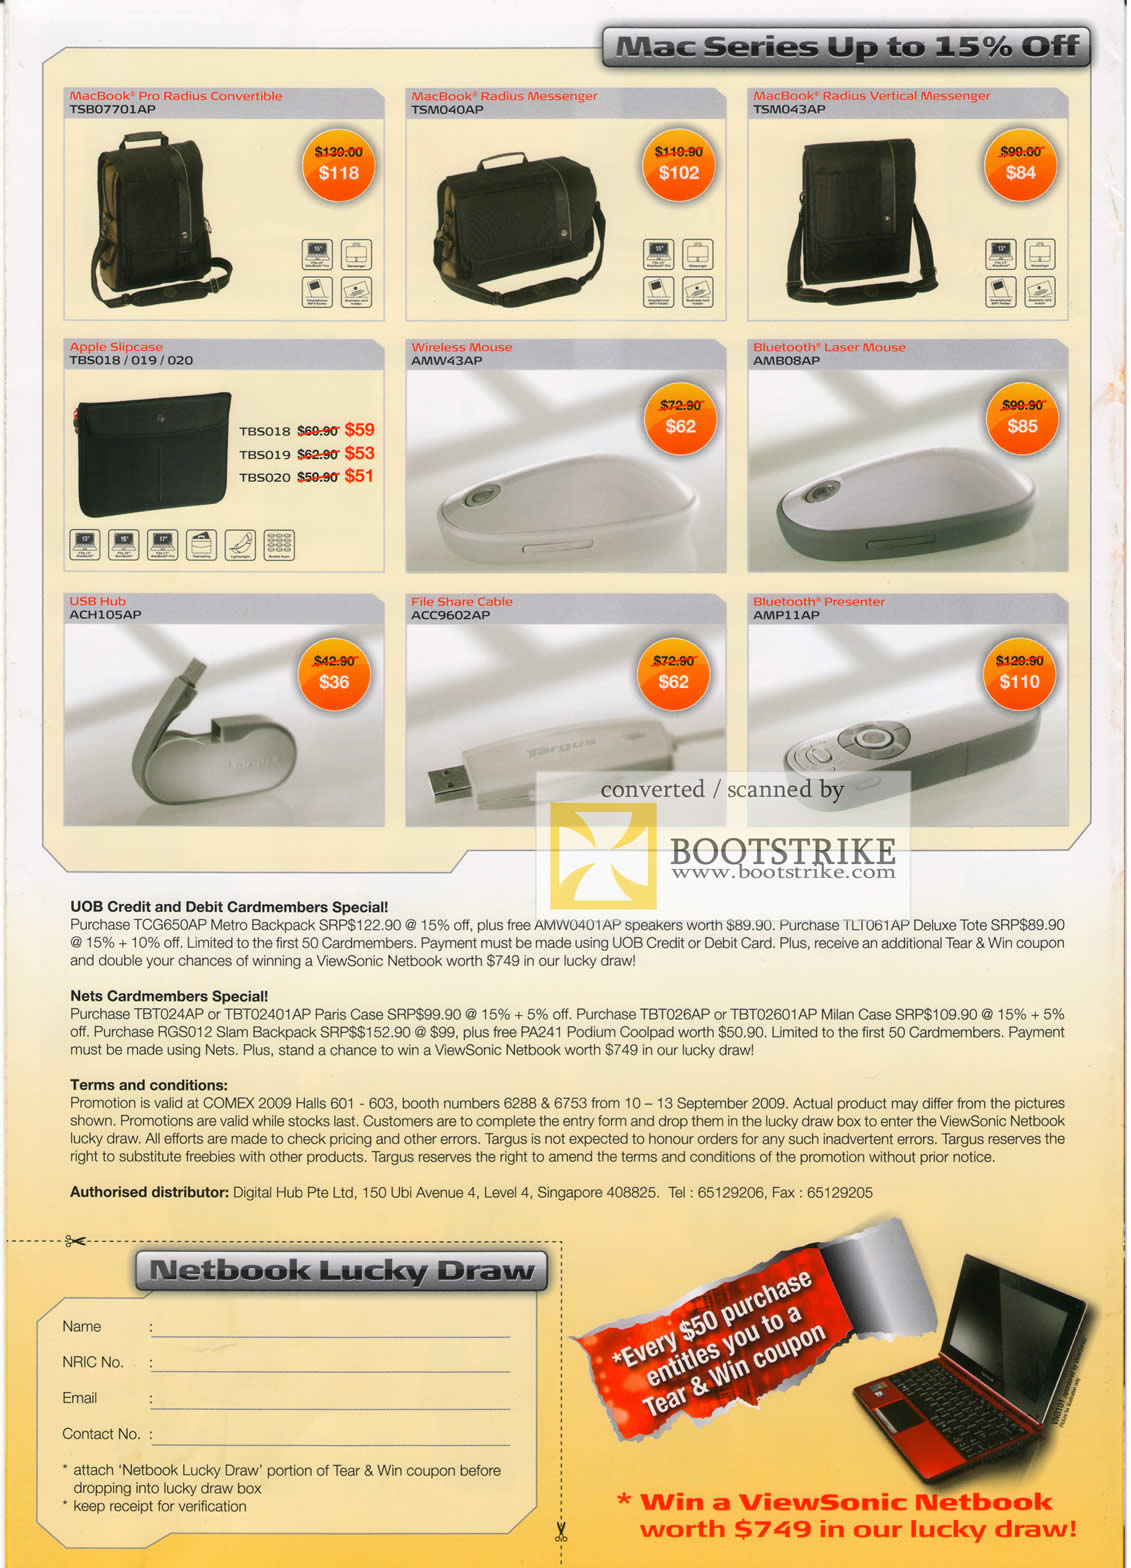 Comex 2009 price list image brochure of Targus Macbook Slipcase Mouse Convertible Messenger Presenter